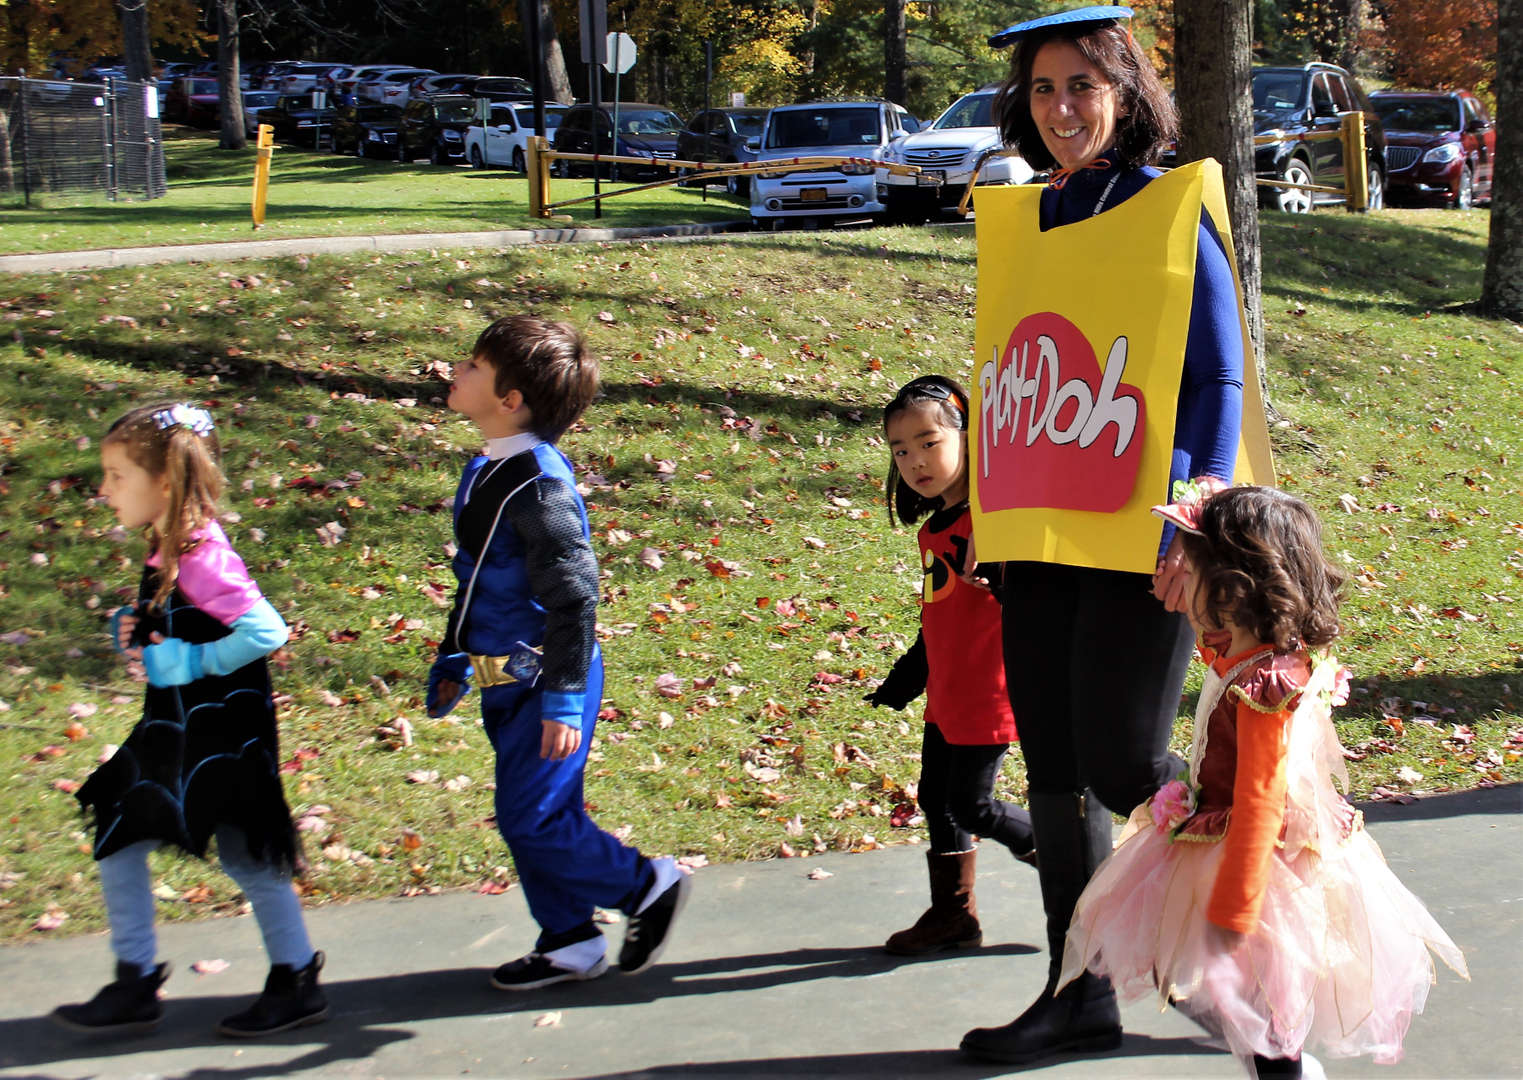 A teacher dressed as a Play-Doh container walks with students.